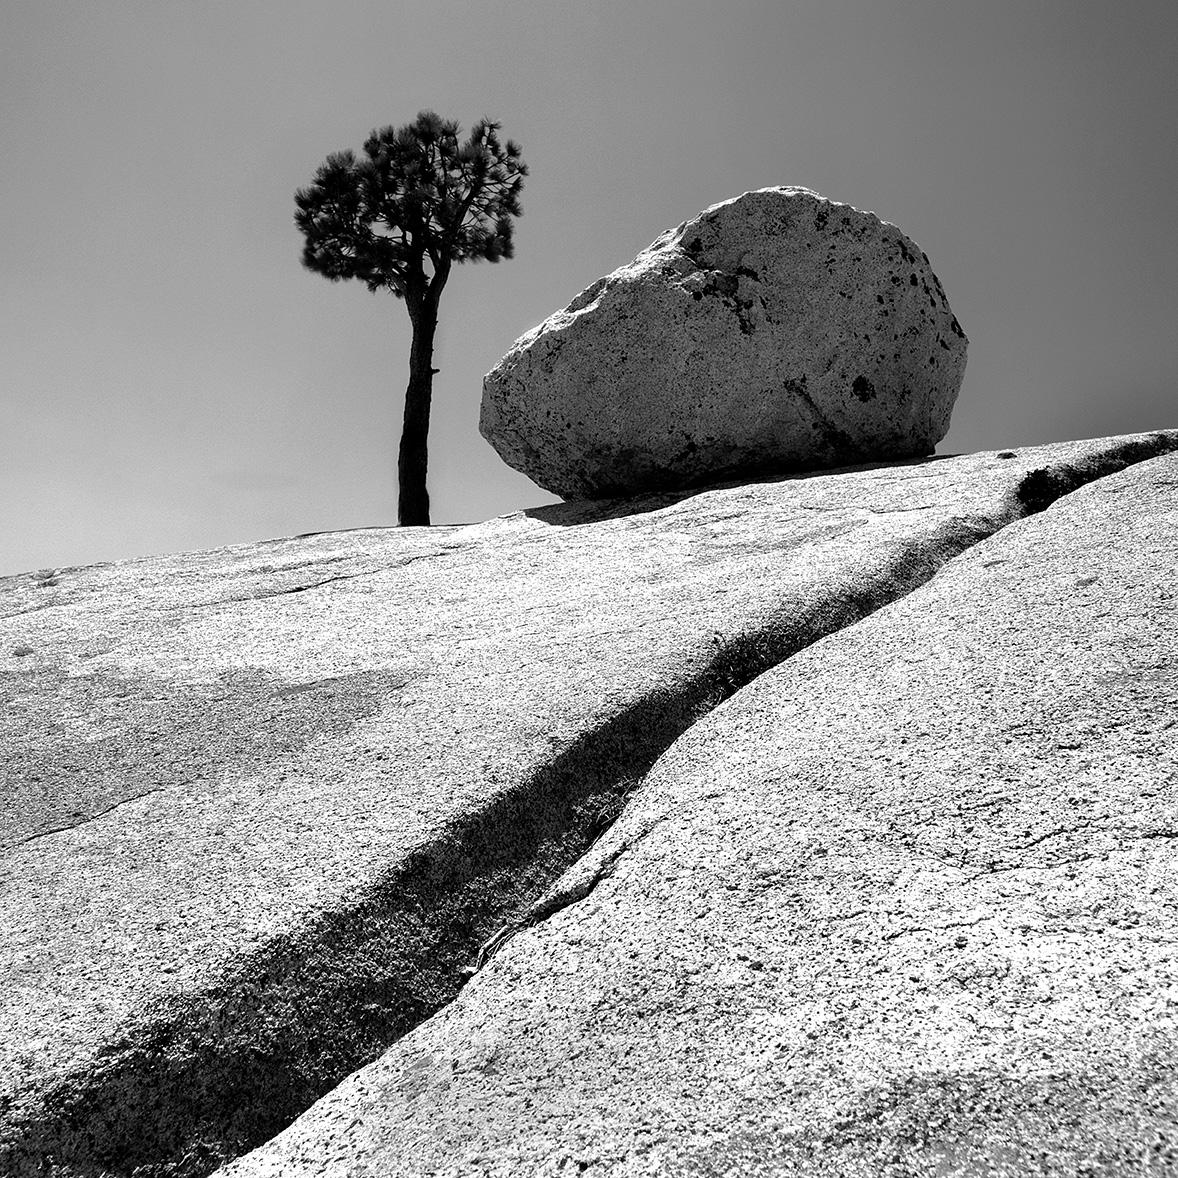 Olmstead Point, Yosemite National Park, USA 2005 © Charlie Waite